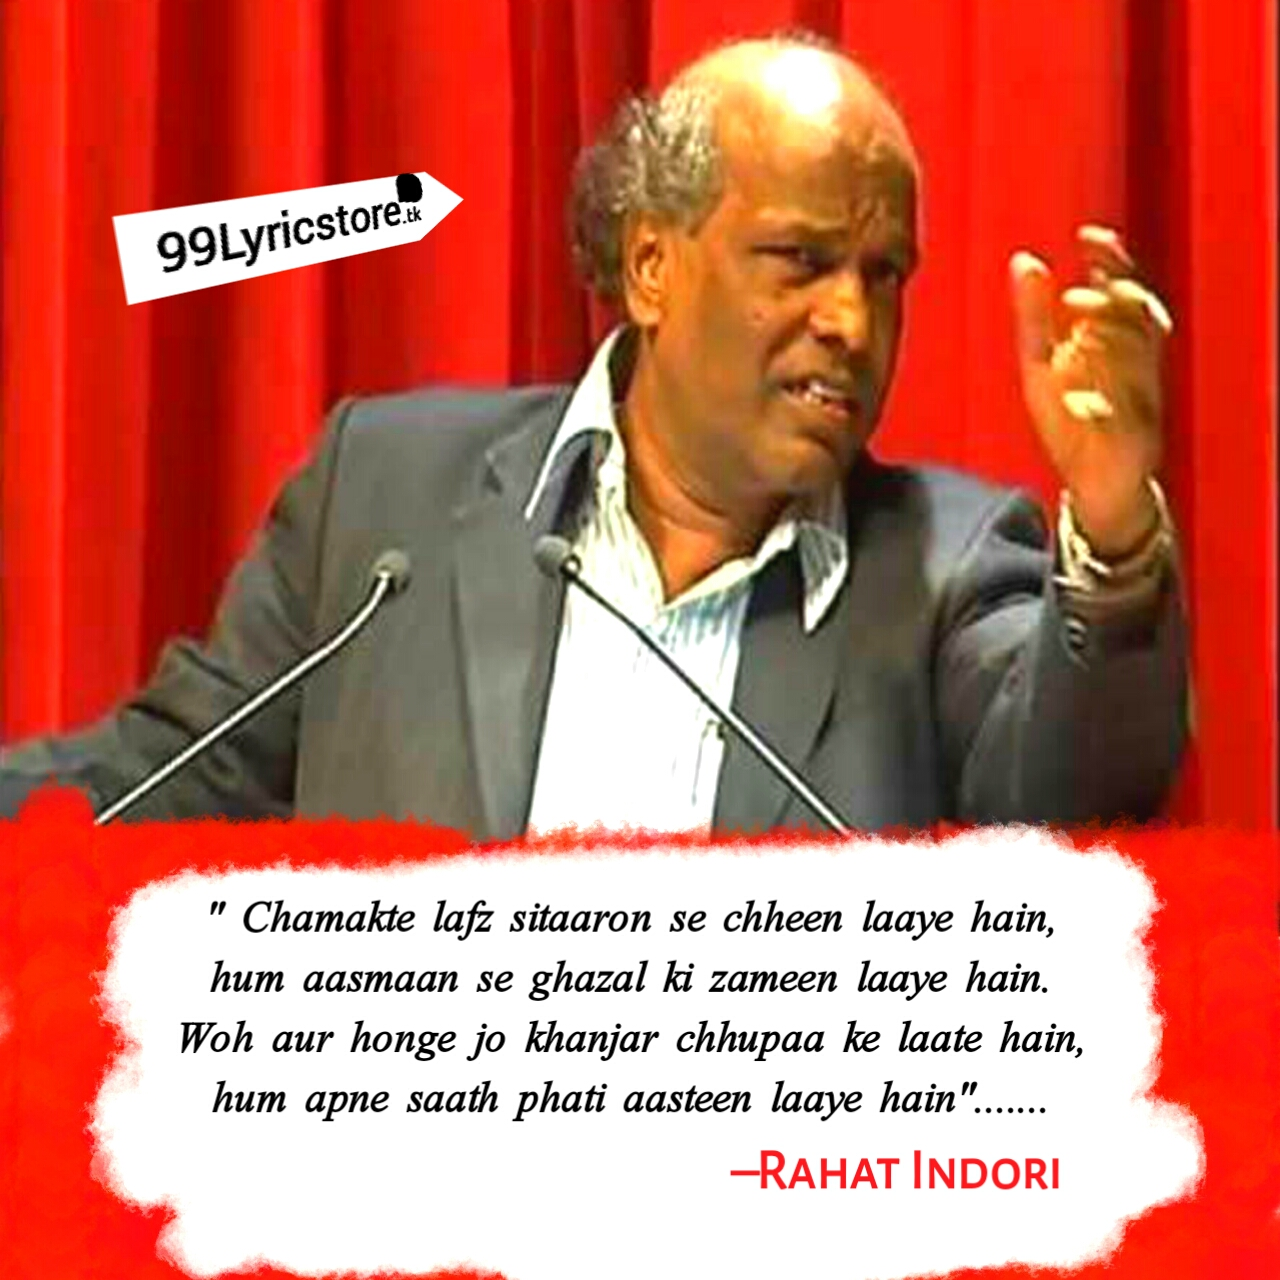 Chamakte Lafz Sitaaron Se Chheen Laaye Hain – Rahat Indori | Ghazal Poetry,  Rahat Indori ghazal, rahat indori ghazal lyrics, rahat indori ghazals hindi, rahat indori ghazal in hindi font,  rahat indori ghazal mushaira, rahat indori ghazal in urdu, rahat indori ghazal youtube,  rahat indori ghazal list, rahat indori ghazal in urdu, rahat indori poem in hindi, राहत इंदौरी ग़ज़ल, rahat indori all ghazal in hindi, rahat indori all ghazal, rahat indori ki ghazal,  rahat indori best ghazal, rahat indori ghazal collection,  dr rahat indori ghazal, rahat indori famous ghazal, rahat indori full ghazal, rahat indori ghazal hindi, rahat indori poem hindi, rahat indori ghazal in hindi, राहत इंदौरी ग़ज़ल इन हिंदी, rahat indori ki ghazal in hindi, rahat indori ki ghazal mushaira, rahat indori ki poem, dr rahat indori ki ghazal, a dr rahat indori ka ghazal, rahat indori latest ghazal, rahat indori motivational poem, rahat indori ki ghazal video, rahat indori new ghazal, rahat indori new poem, rahat indori ki new ghazal,  rahat indori romantic ghazal, rahat indori ghazal shayari, rahat indori sahab ka ghazal, राहत इंदौरी ग़ज़ल शायरी, rahat indori urdu ghazal, rahat indori ghazal video, rahat indori poem video, ghazal lyrics by rahat indori, rahat indori ghazal lyrics in hindi, rahat indori sher in hindi,  rahat indori sher in hindi images, rahat indori best shayari in hindi, rahat indori shayri, rahat indori shayari in hindi, rahat indori sher, rahat indori status, rahat indori poetry, rahat indori ghazal, rahat indori quotes, rahat indori shayar, rahat indori shayri image, rahat indori youtube, rahat indori ki shayariya, rahat indori ke sher, rahat indori sahab, rahat indori lyrics, rahat indori shayari video, राहत इंदौरी, rahat indori all india mushaira, rahat indori aasman laye ho, rahat indori all ghazal in hindi, rahat indori aisi sardi hai, rahat indori mushaira, rahat indori aasman thodi hai, rahat indori amrood pak rahe honge, rahat indori agar khilaf hai, rahat indori best,  rahat indori best shayari 2018, rahat indori best poetry, rahat indori bewafa shayari, rahat indori best quotes, rahat indori best poem, rahat indori best ghazal in hindi, rahat indori best kavi sammelan, rahat indori best ghazal, rahat indori collection, rahat indori chand pagal hai, rahat indori  shayari, rahat indori classic shayari, rahat indori jashn e rekhta, rahat indori in english, rahat indori shayri on election,  Rahat indori love shayari, rahat indori love Ghazal, rahat indori love poetry in Hindi, rahat indori love quotes in Hindi, rahat indori love quotes in two line, rahat indori mushaira,  rahat indori mushaira video,   rahat indori mushaira in hindi,   rahat indori mushaira lyrics,    rahat indori mushaira latest,    rahat indori mushaira ghazal,    राहत इन्दोरी मुशाइरा,    dr rahat indori mushaira 2018 mehfil e mushaira,   rahat indori etv urdu mushaira,   rahat indori all mushaira,    rahat indori ki ghazal mushaira,   rahat indori mushaira in hindi,   hind mushaira rahat indori  Rahat indori poetry, rahat indori poetry in hindi, rahat indori poetry images, rahat indori poetry in english, rahat indori poetry in urdu,  rahat indori poetry on love, rahat indori poetry in hindi lyrics, rahat indori poetry on politics,  rahat indori poetry in urdu font, rahat indori poetry thodi hai, राहत इंदौरी पोएट्री, rahat indori all poetry, rahat indori all poems, rahat indori all poet, rahat indori poetry best, rahat indori best poetry in hindi, rahat indori best poetry in urdu, rahat indori best poem, dr rahat indori best poetry, poetry by rahat indori, rahat indori poetry collection, rahat indori poetry,  dr rahat indori poetry in urdu, rahat indori poetry funny, rahat indori famous poetry, rahat indori famous poem, rahat indori poetry in hindi font, rahat indori poetry hindi, rahat indori poem hindi, rahat indori hindi poet, rahat indori poetry images in hindi, rahat indori love poetry in hindi, rahat indori poetry in urdu, rahat indori poetry, rahat indori poem in hindi, rahat indori poet in hindi, rahat indori indian poet, rahat indori ki poetry, rahat indori ki poem, rahat indori poetry lyrics, rahat indori poetry love, rahat indori poetry lyrics in hindi, rahat indori latest poetry, rahat indori poetry 2 line, rahat indori motivational poem, rahat indori new poetry, rahat indori new poem, rahat indori old poetry, best of rahat indori poetry, poetry of rahat indori, poetry of rahat indori in urdu, poetry of rahat indori in hindi, rahat indori poetry pics, rahat indori urdu poetry, rahat indori poem in hindi,  poet rahat indori poetry, Chamakte lafz sitaaron se chheen laaye hain,  hum aasmaan se ghazal ki zameen laaye hain.